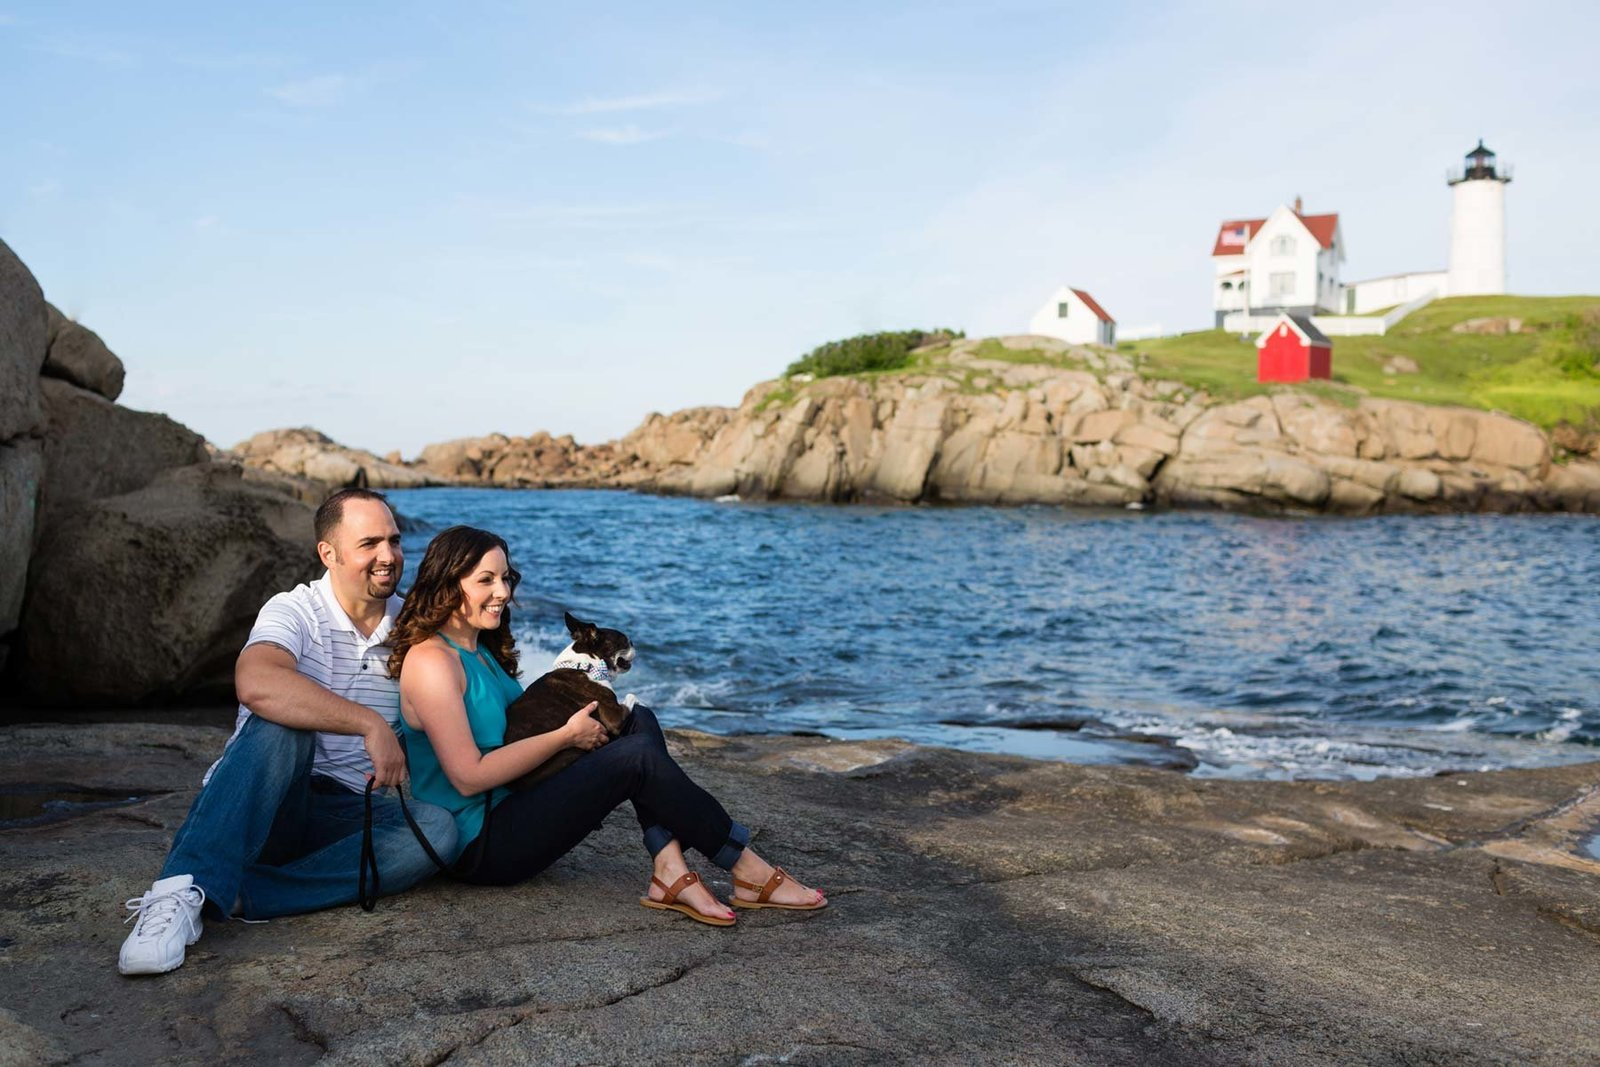 York Maine Wedding Photographers Engagement Session Nubble Lighthouse Image Water Dog I am Sarah V Photography